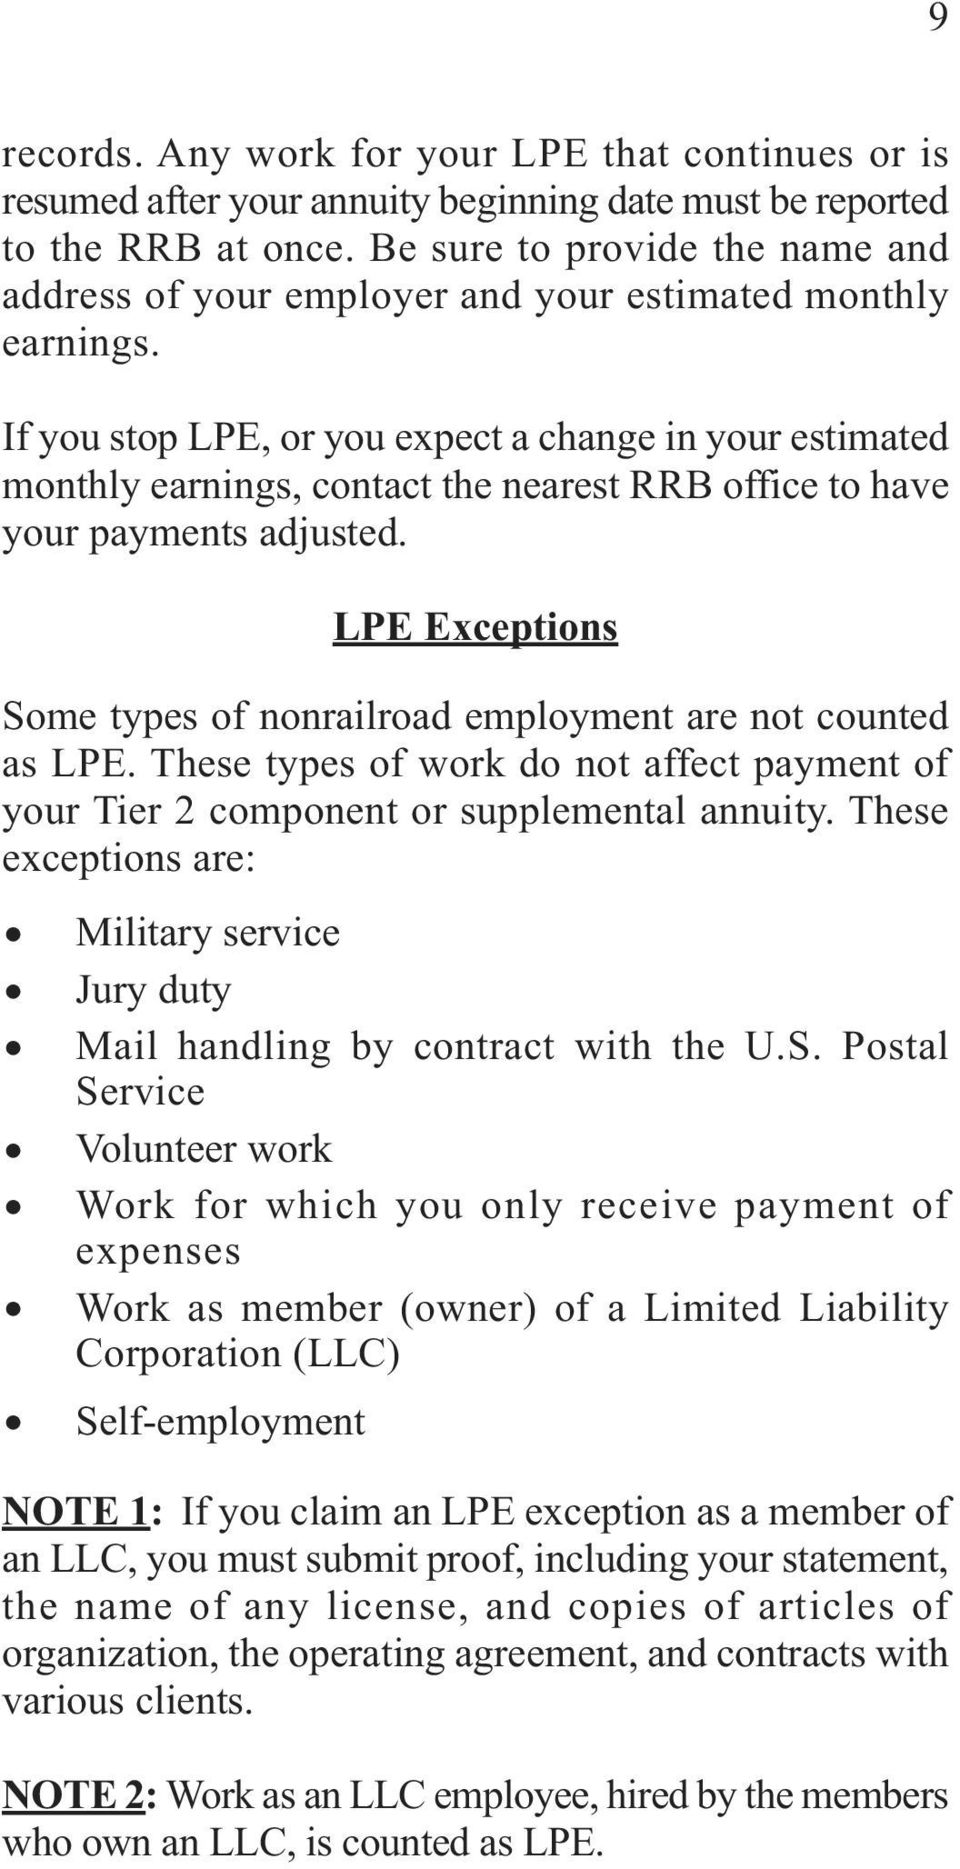 If you stop LPE, or you expect a change in your estimated monthly earnings, contact the nearest RRB office to have your payments adjusted.